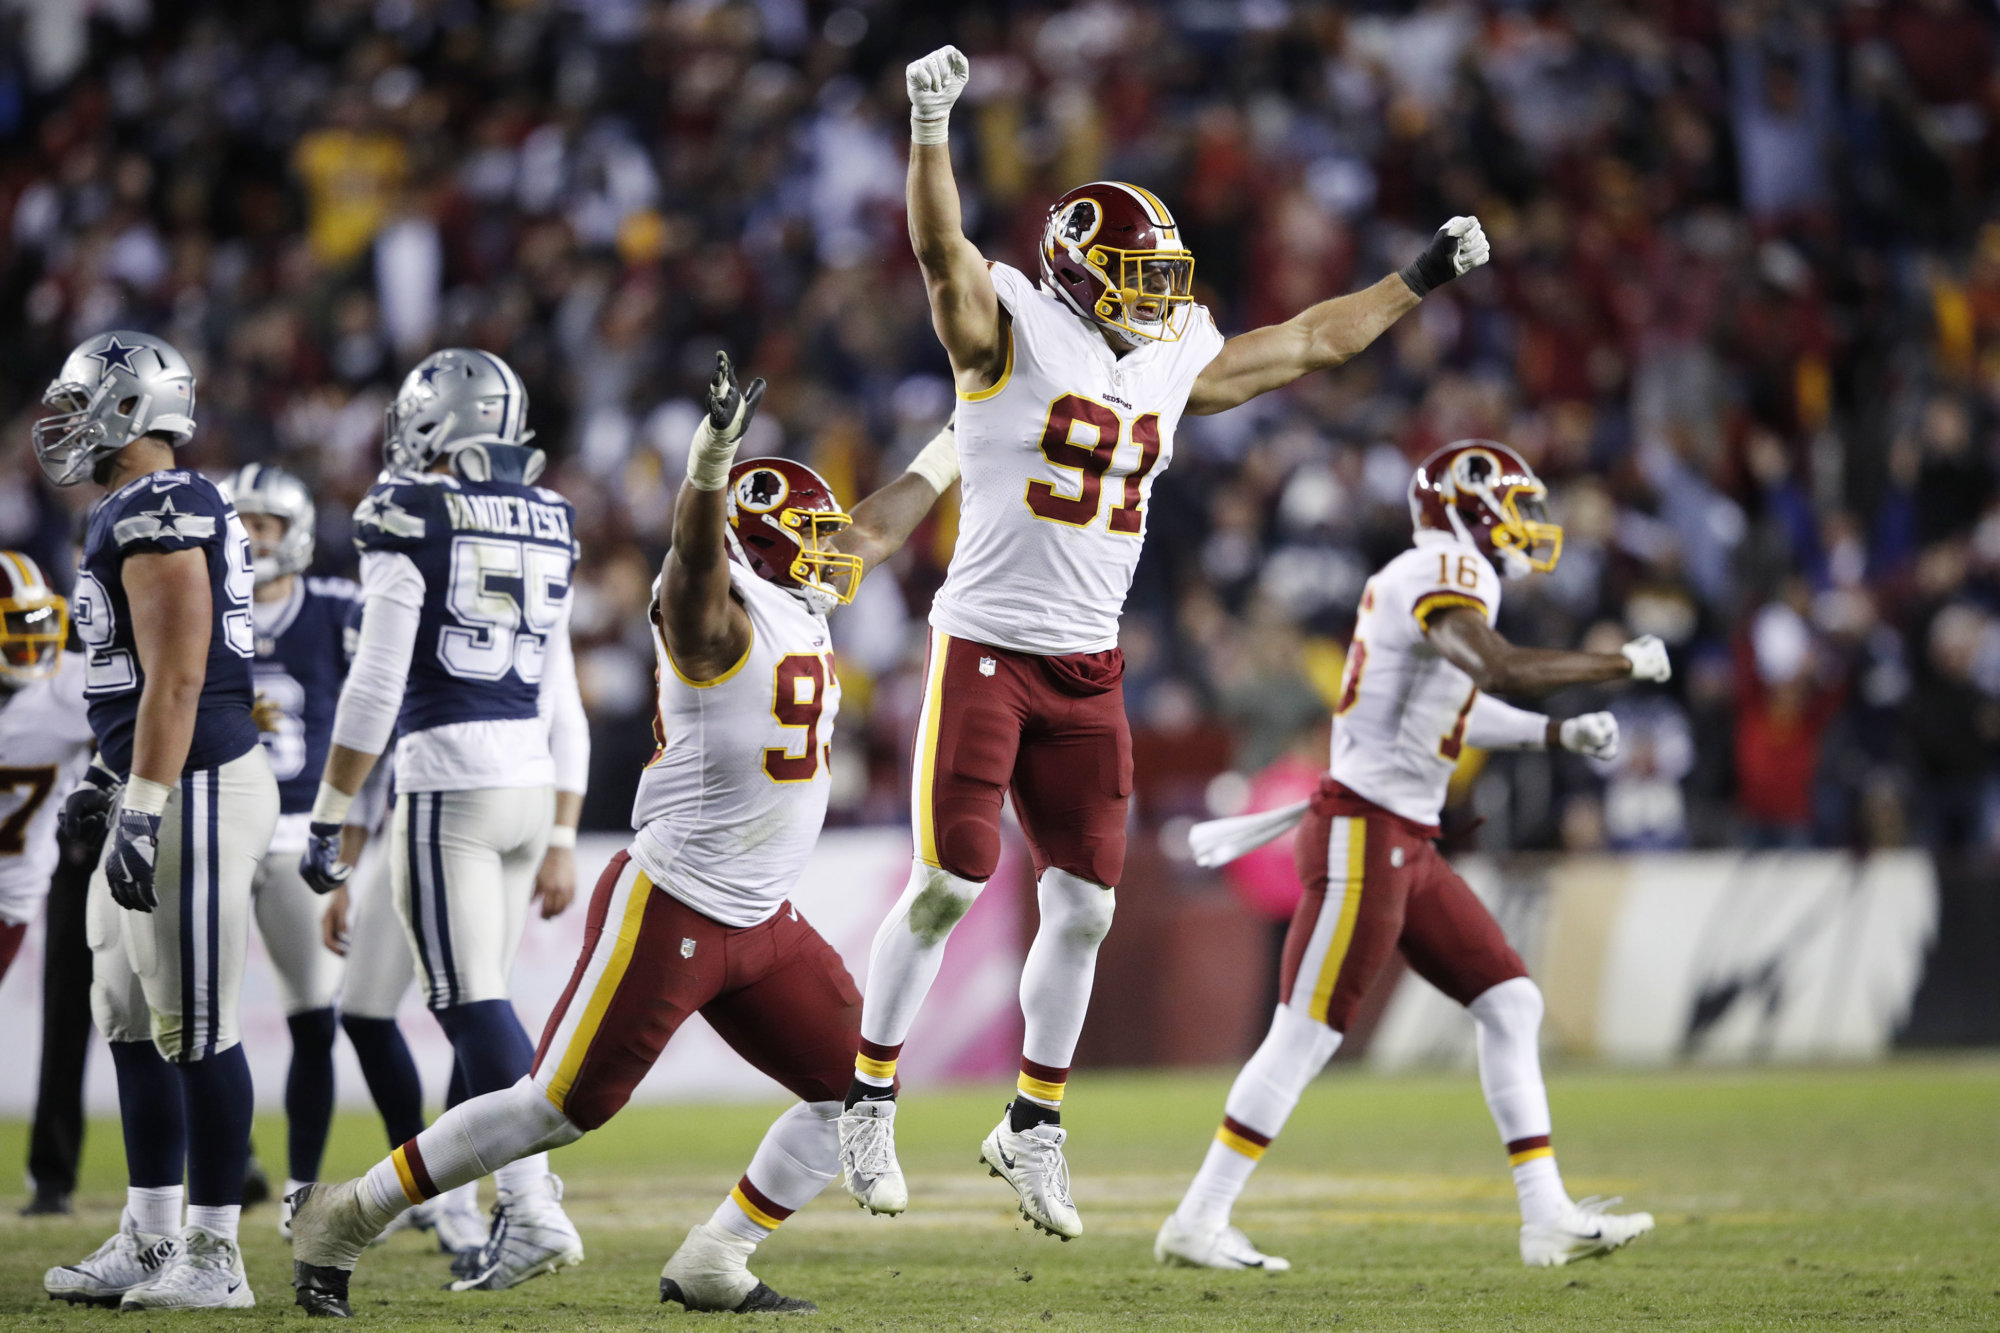 LANDOVER, MD - OCTOBER 21: Ryan Kerrigan #91 and Jonathan Allen #93 of the Washington Redskins react after a missed field goal by the Dallas Cowboys as time expired in the game at FedExField on October 21, 2018 in Landover, Maryland. The Redskins won 20-17. (Photo by Joe Robbins/Getty Images)